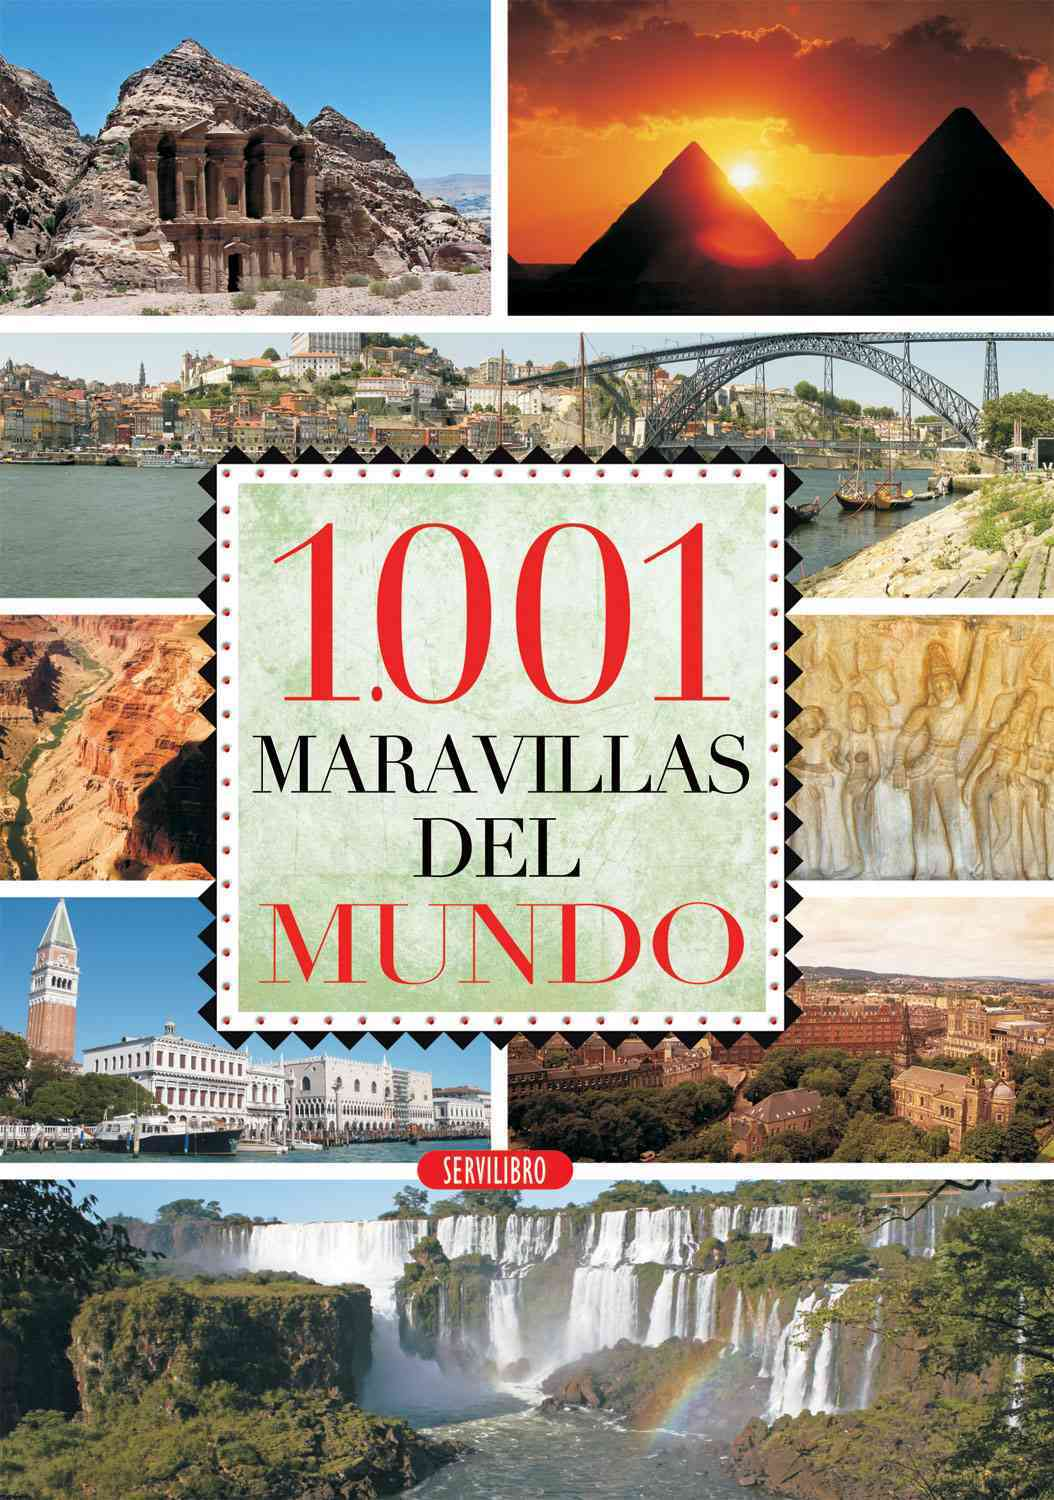 1.001 maravillas del mundo / 1,001 Wonders of the World By Servilibro (EDT)